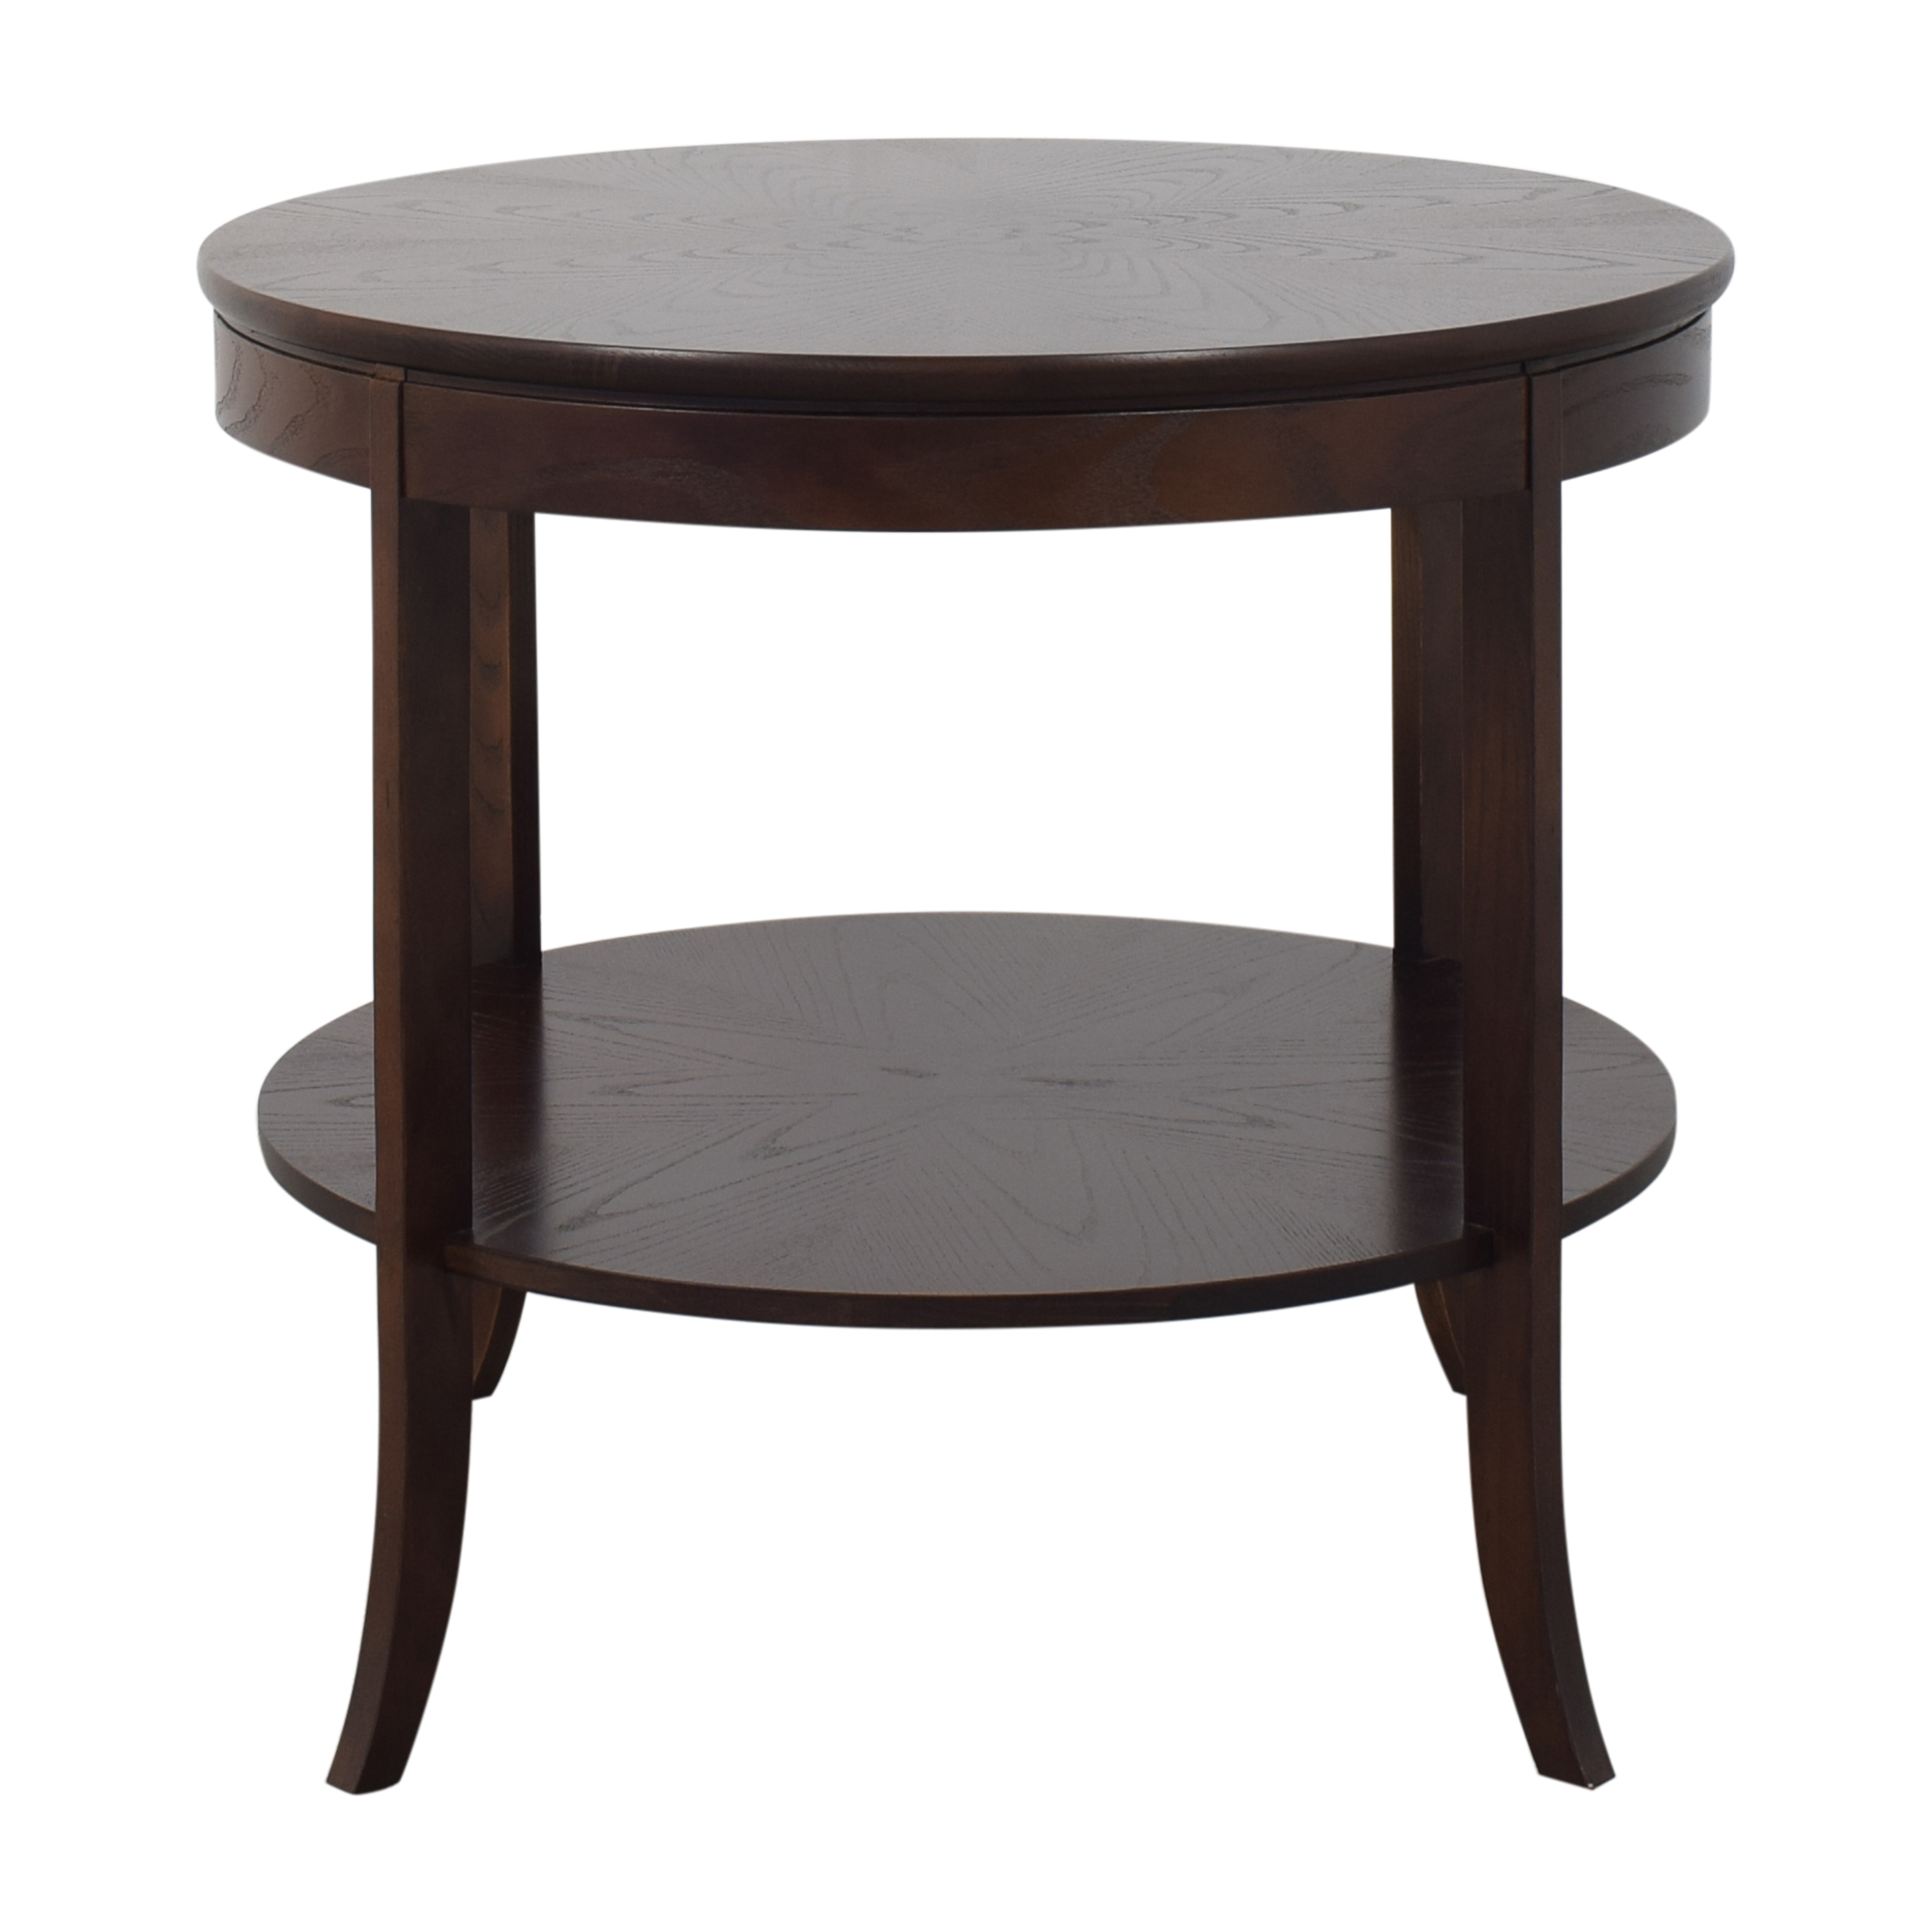 Stanley Furniture Round End Table / Tables